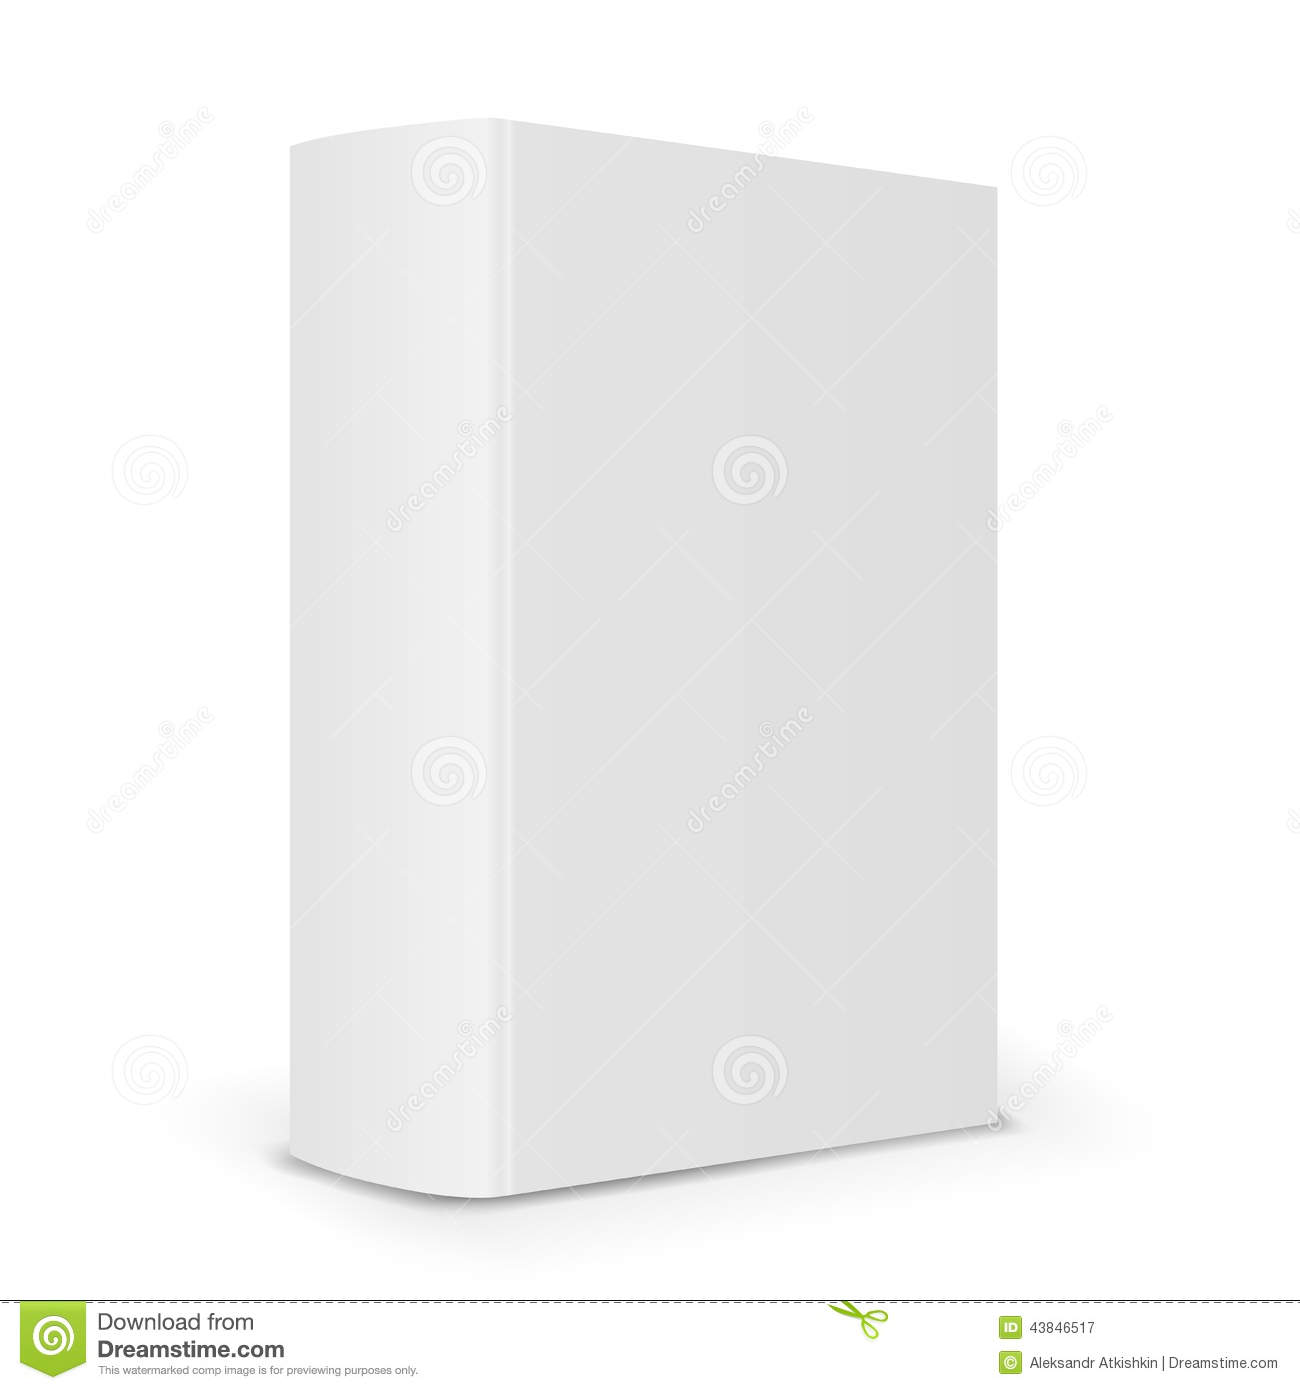 Blank Book Cover Vector Illustration Free : Blank book spine stock vector image